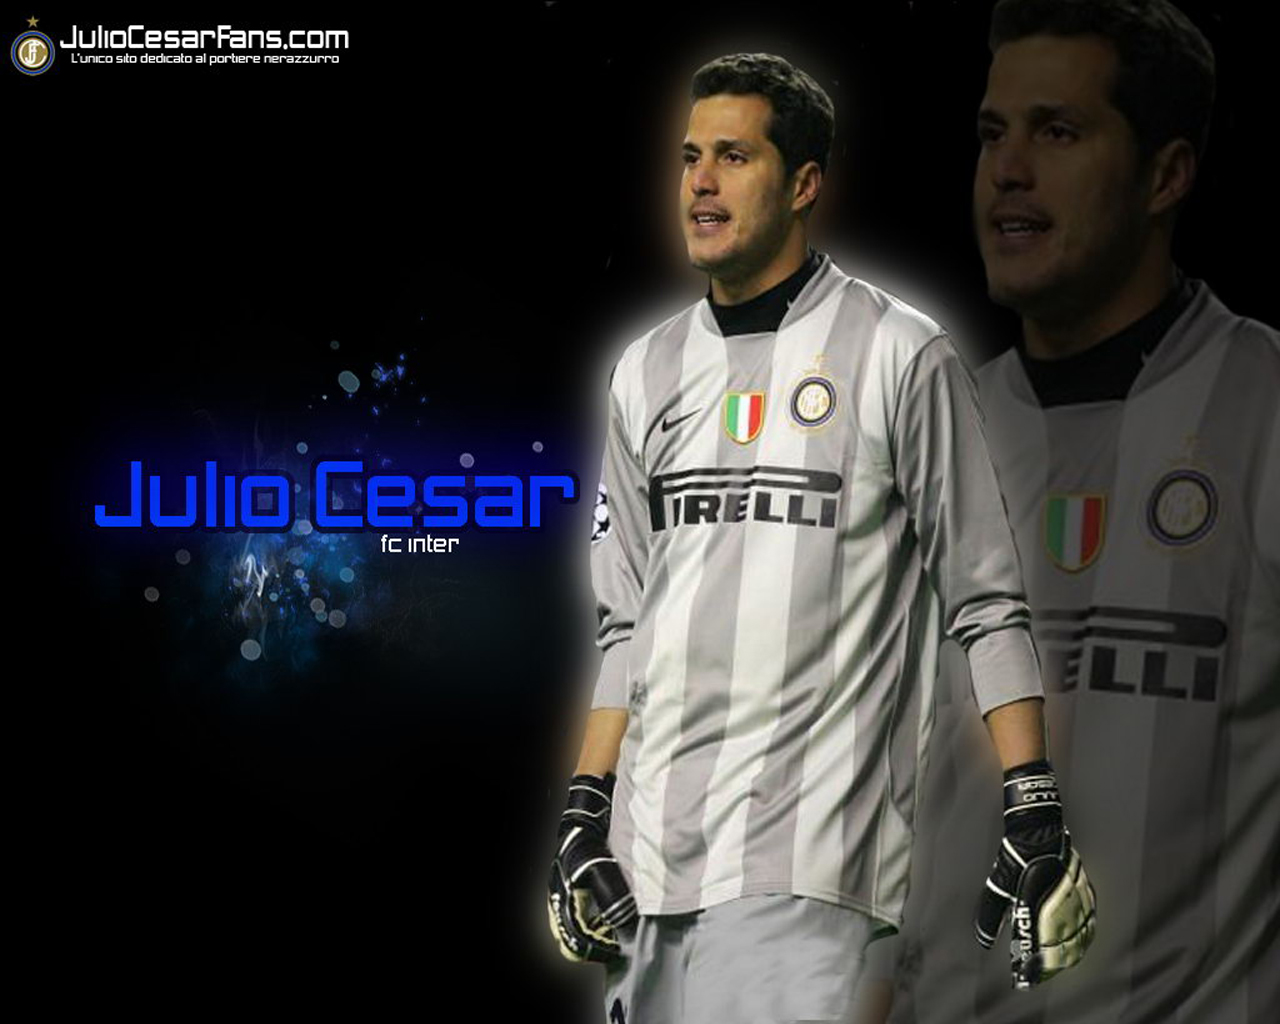 Julio Cesar Wallpaper 2011 | Barcelona FC Wallpaper 2012 For Android ...